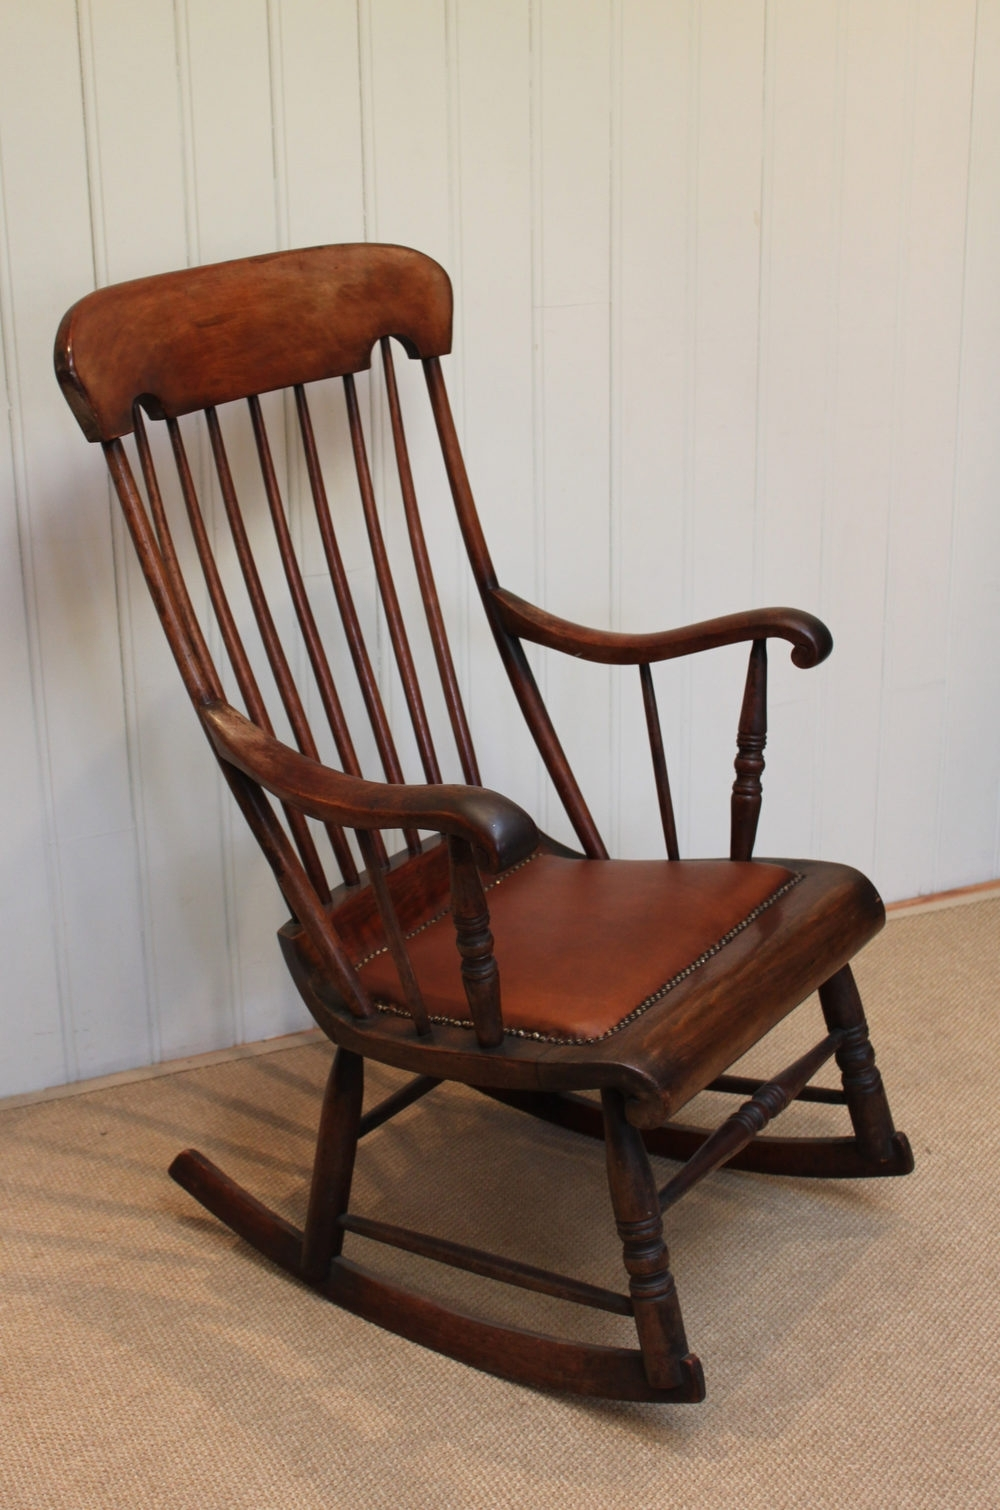 Victorian Fruitwood Rocking Chair – Antiques Atlas In Most Recent Victorian Rocking Chairs (View 9 of 15)